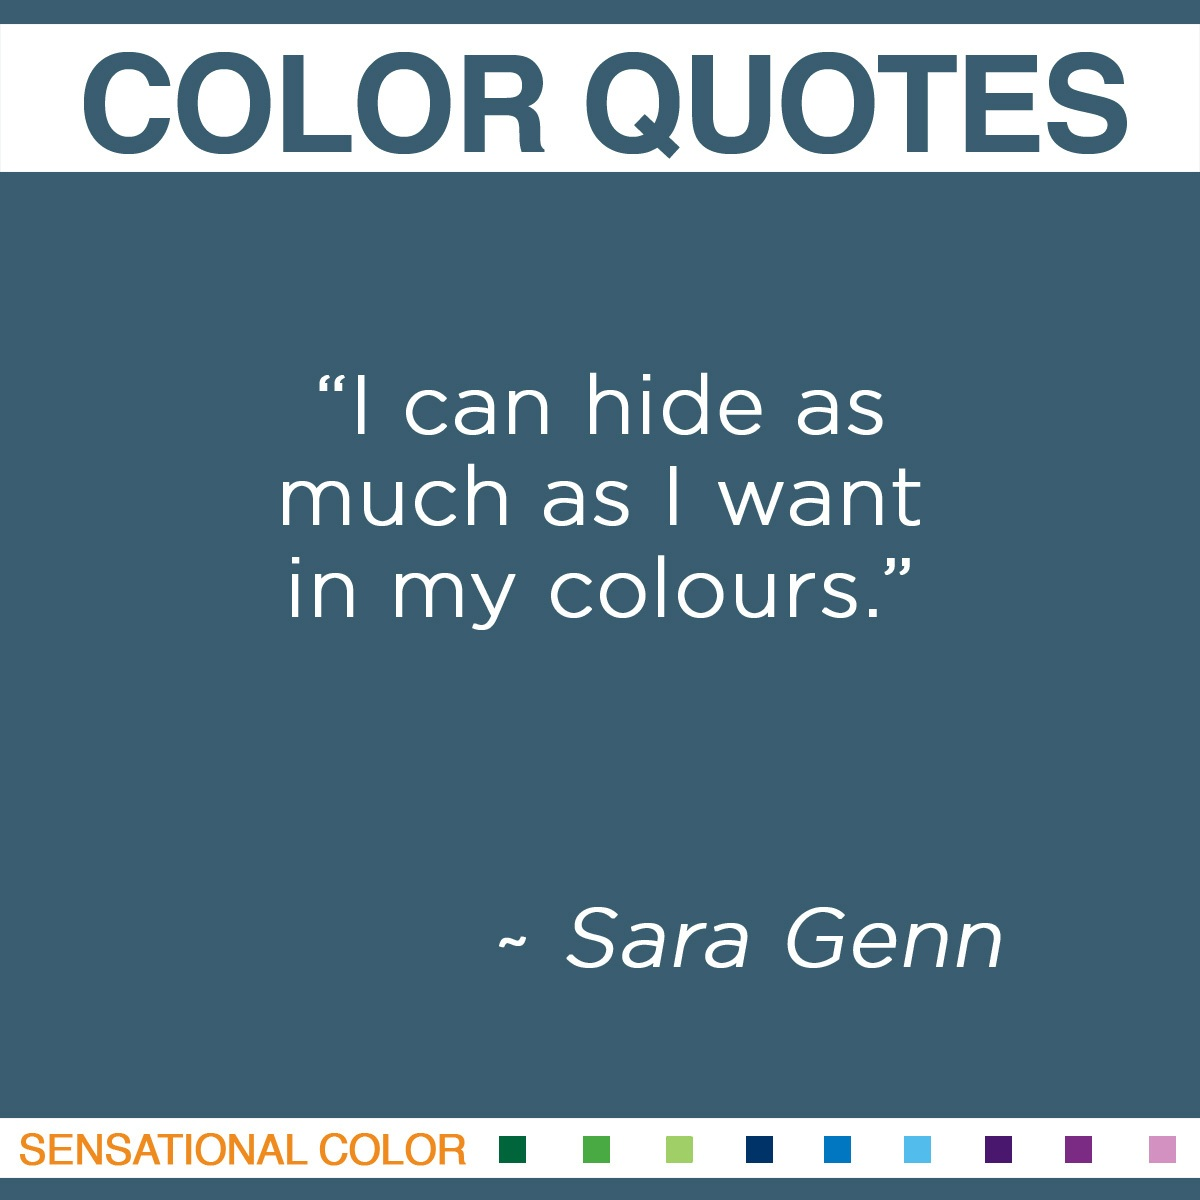 """I can hide as much as I want in my colours"" - Sara Genn"